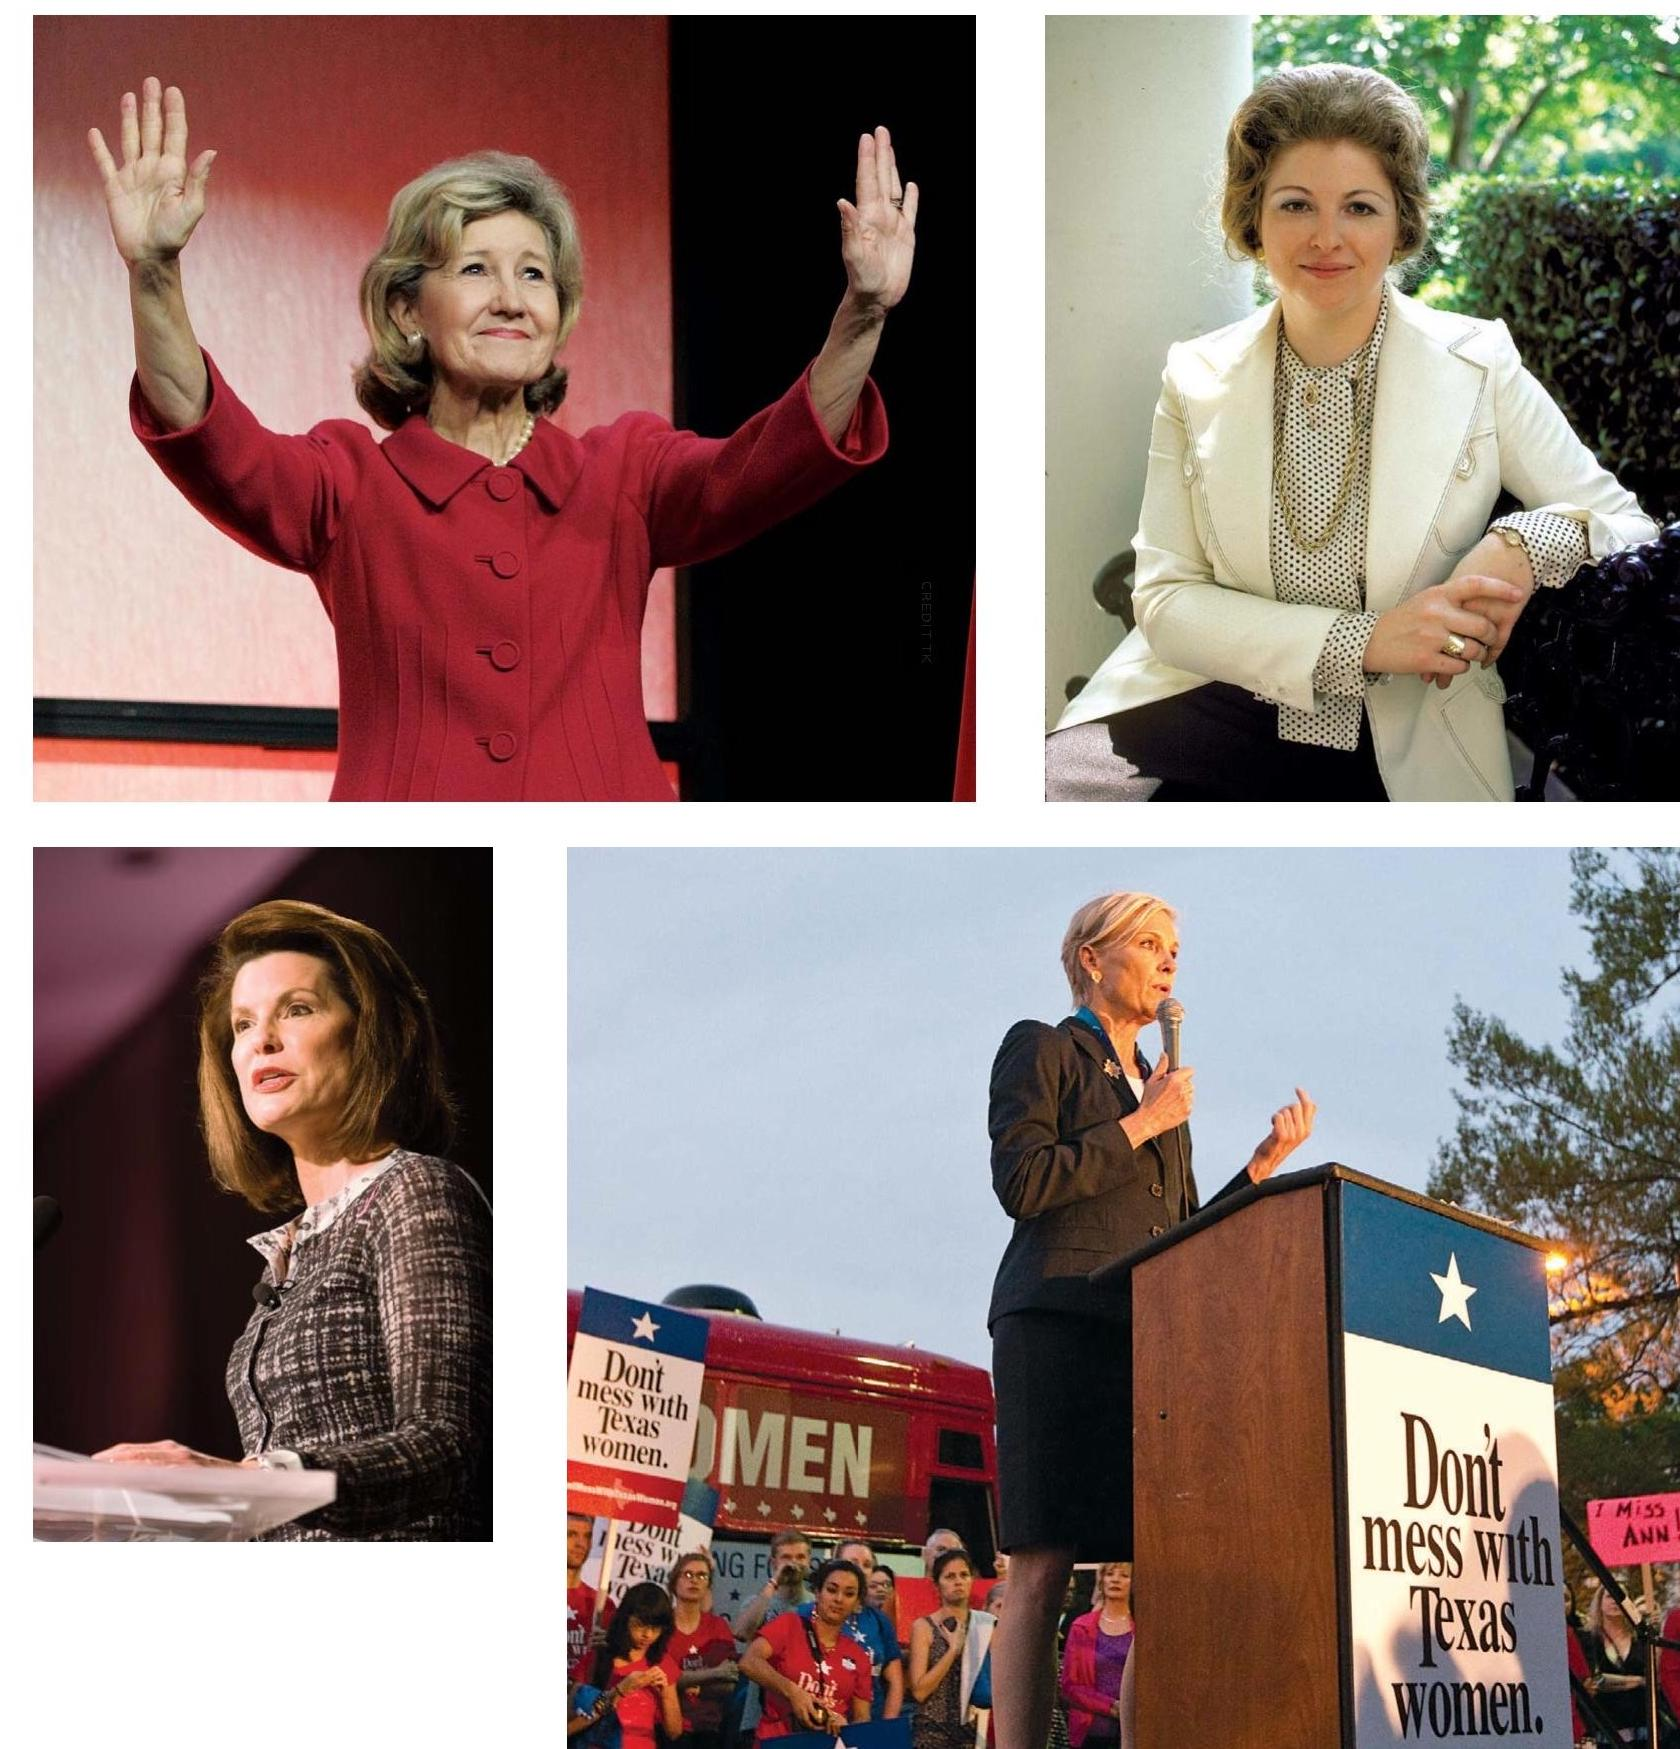 Women in Texas have taken numerous paths to power (clockwise from top left): Sarah Weddington, who went on to become President Jimmy Carter's special assistant for women's affairs; Cecile Richards, Ann's daughter and the head of Planned Parenthood; Nancy Brinker, the founder of Susan G. Komen for the Cure; Senator Kay Bailey Hutchison, currently the highest-ranking female politician in Texas.